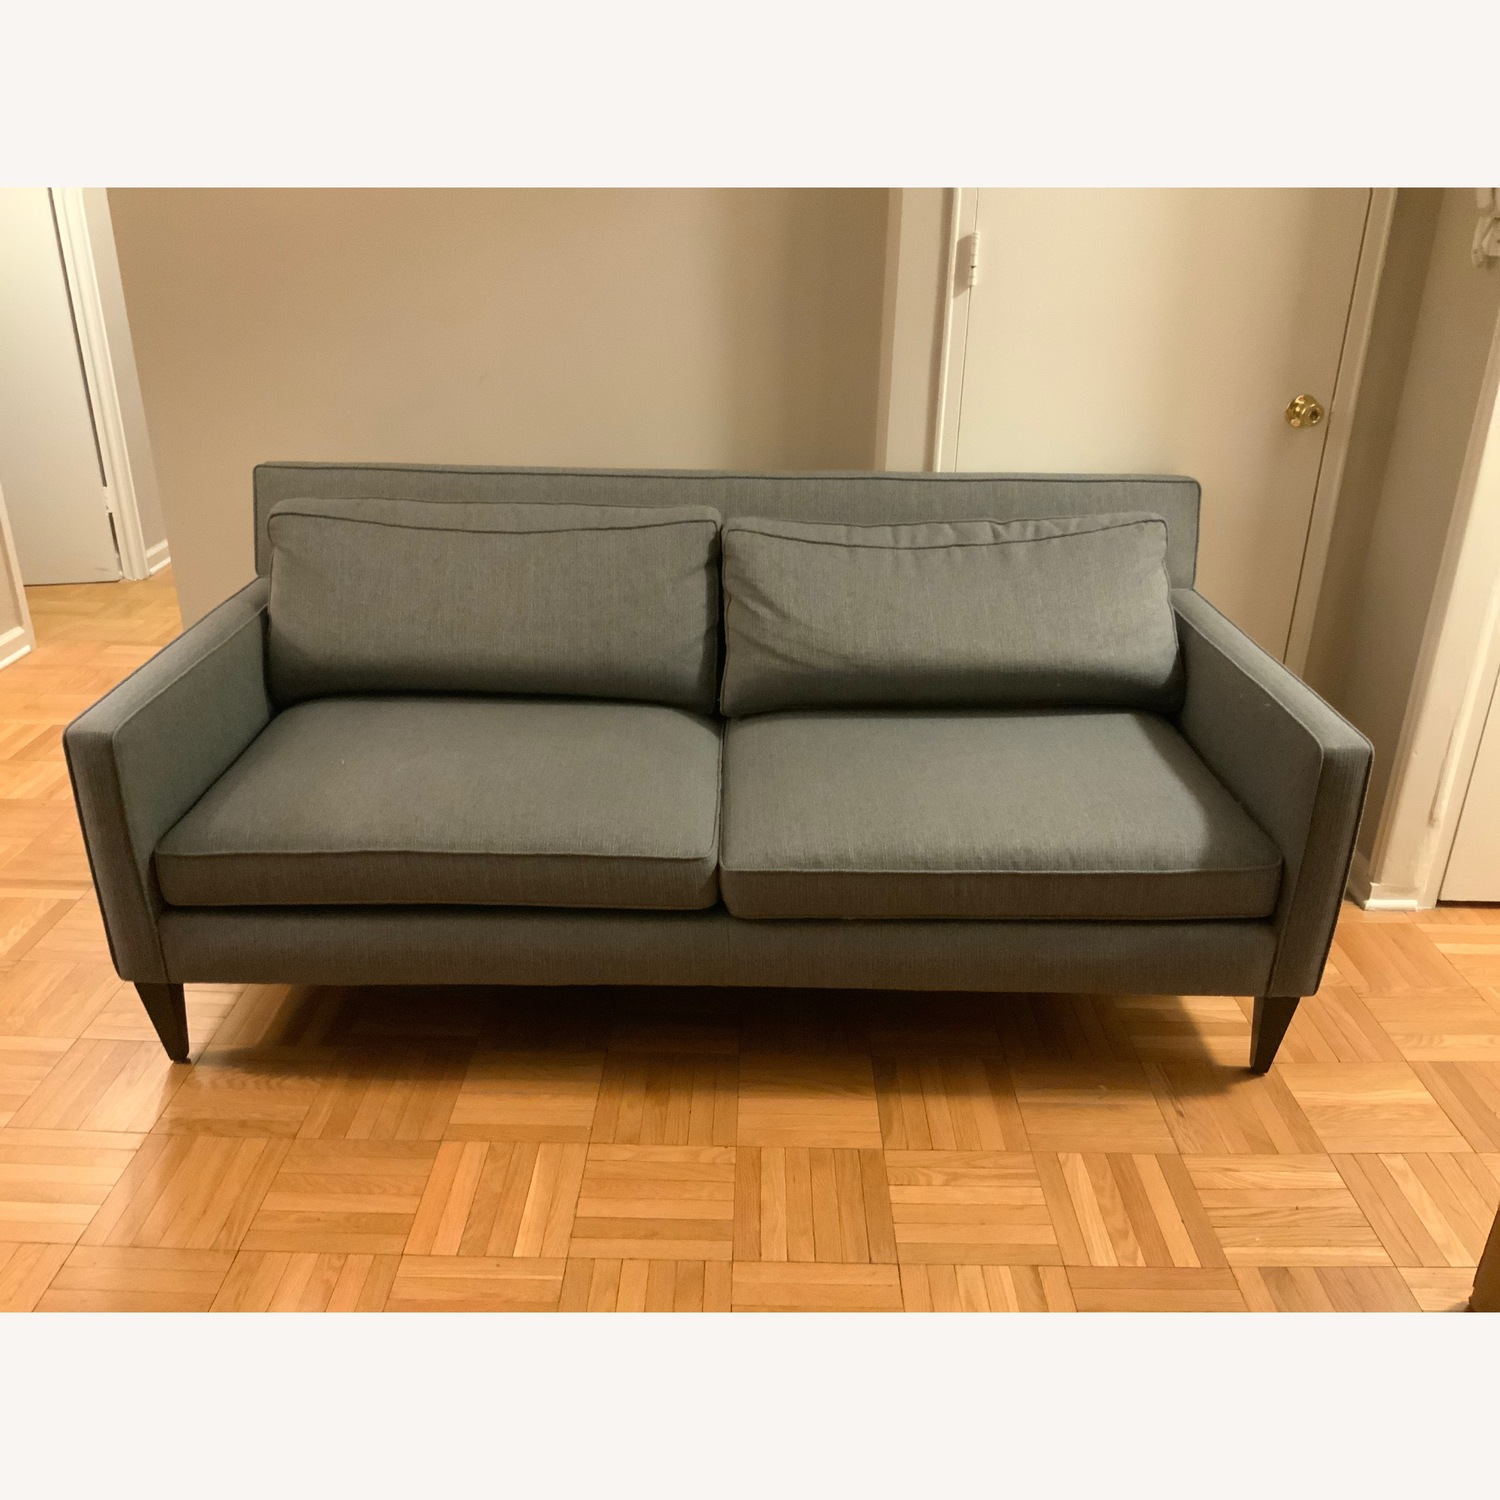 Crate & Barrel Rochelle Apartment Sofa - image-1